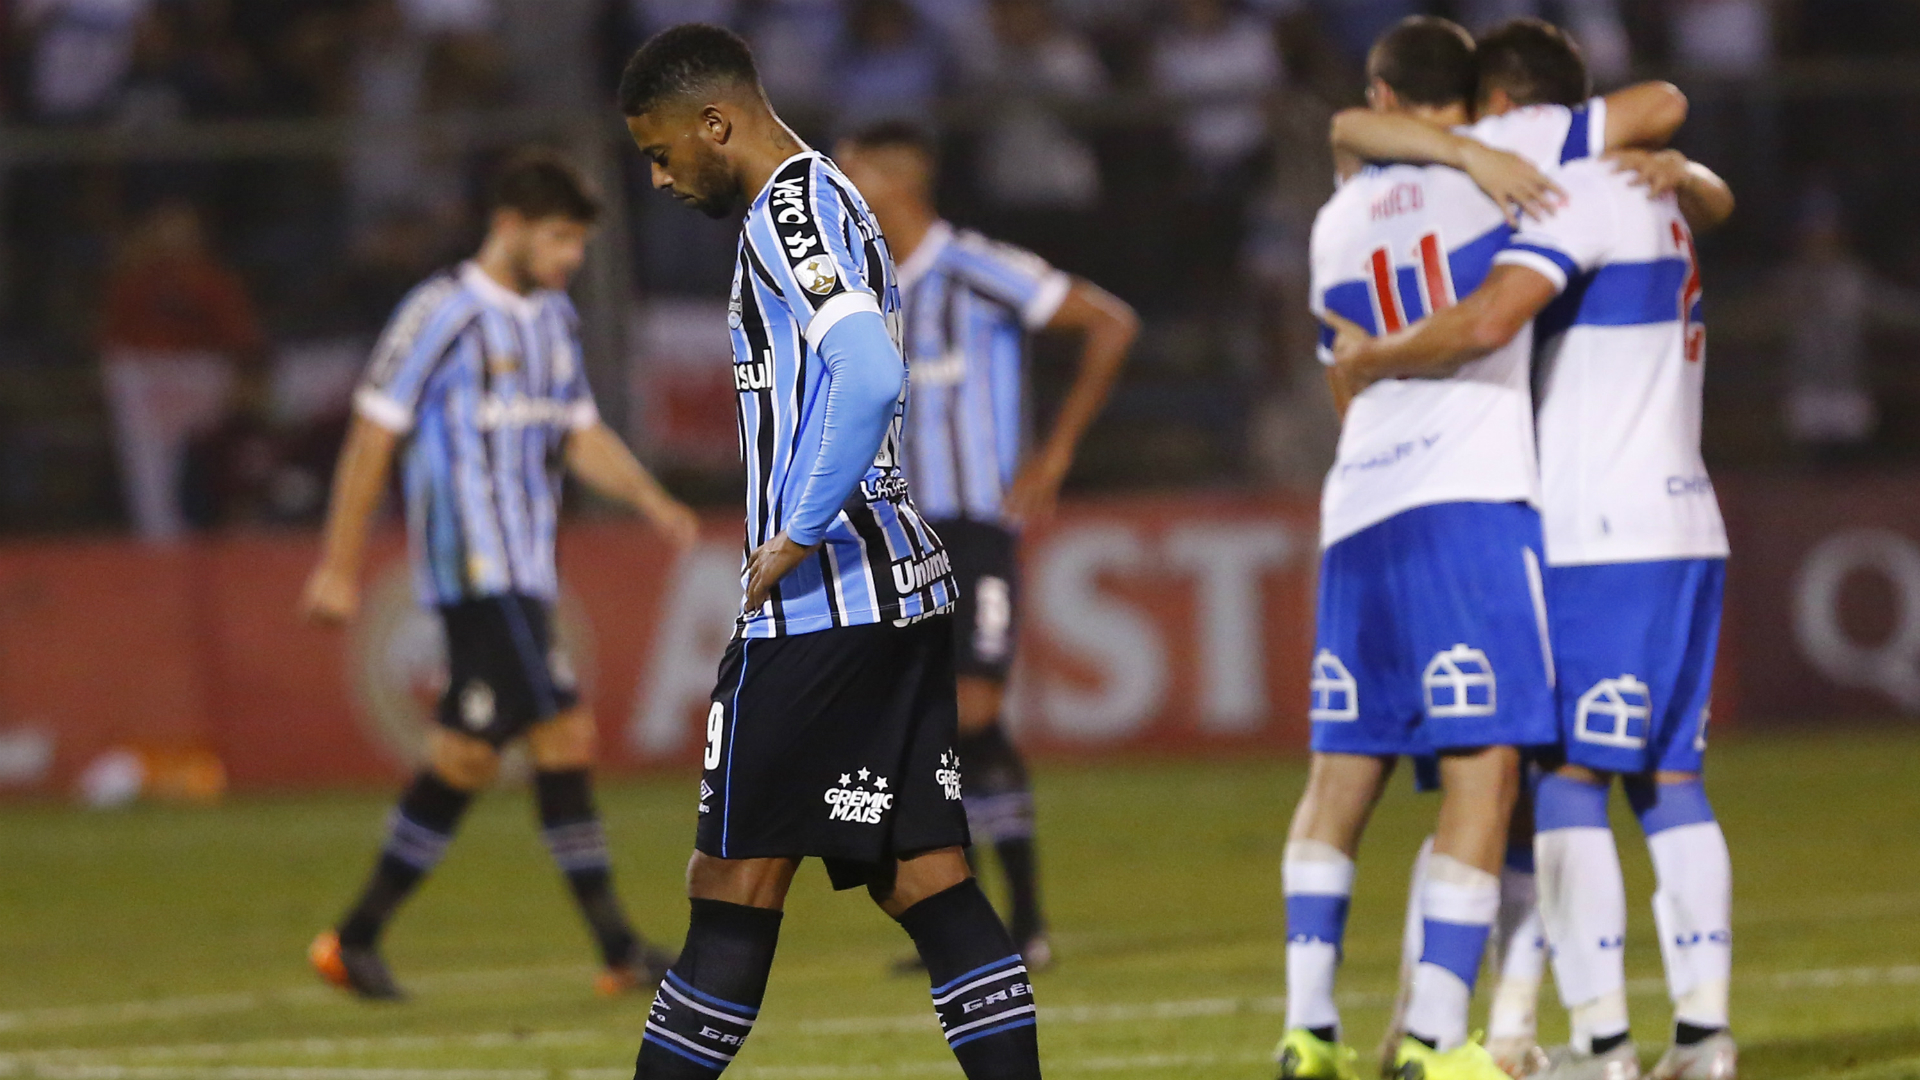 Copa Libertadores Review: Gremio winless after Catolica defeat, Libertad perfect